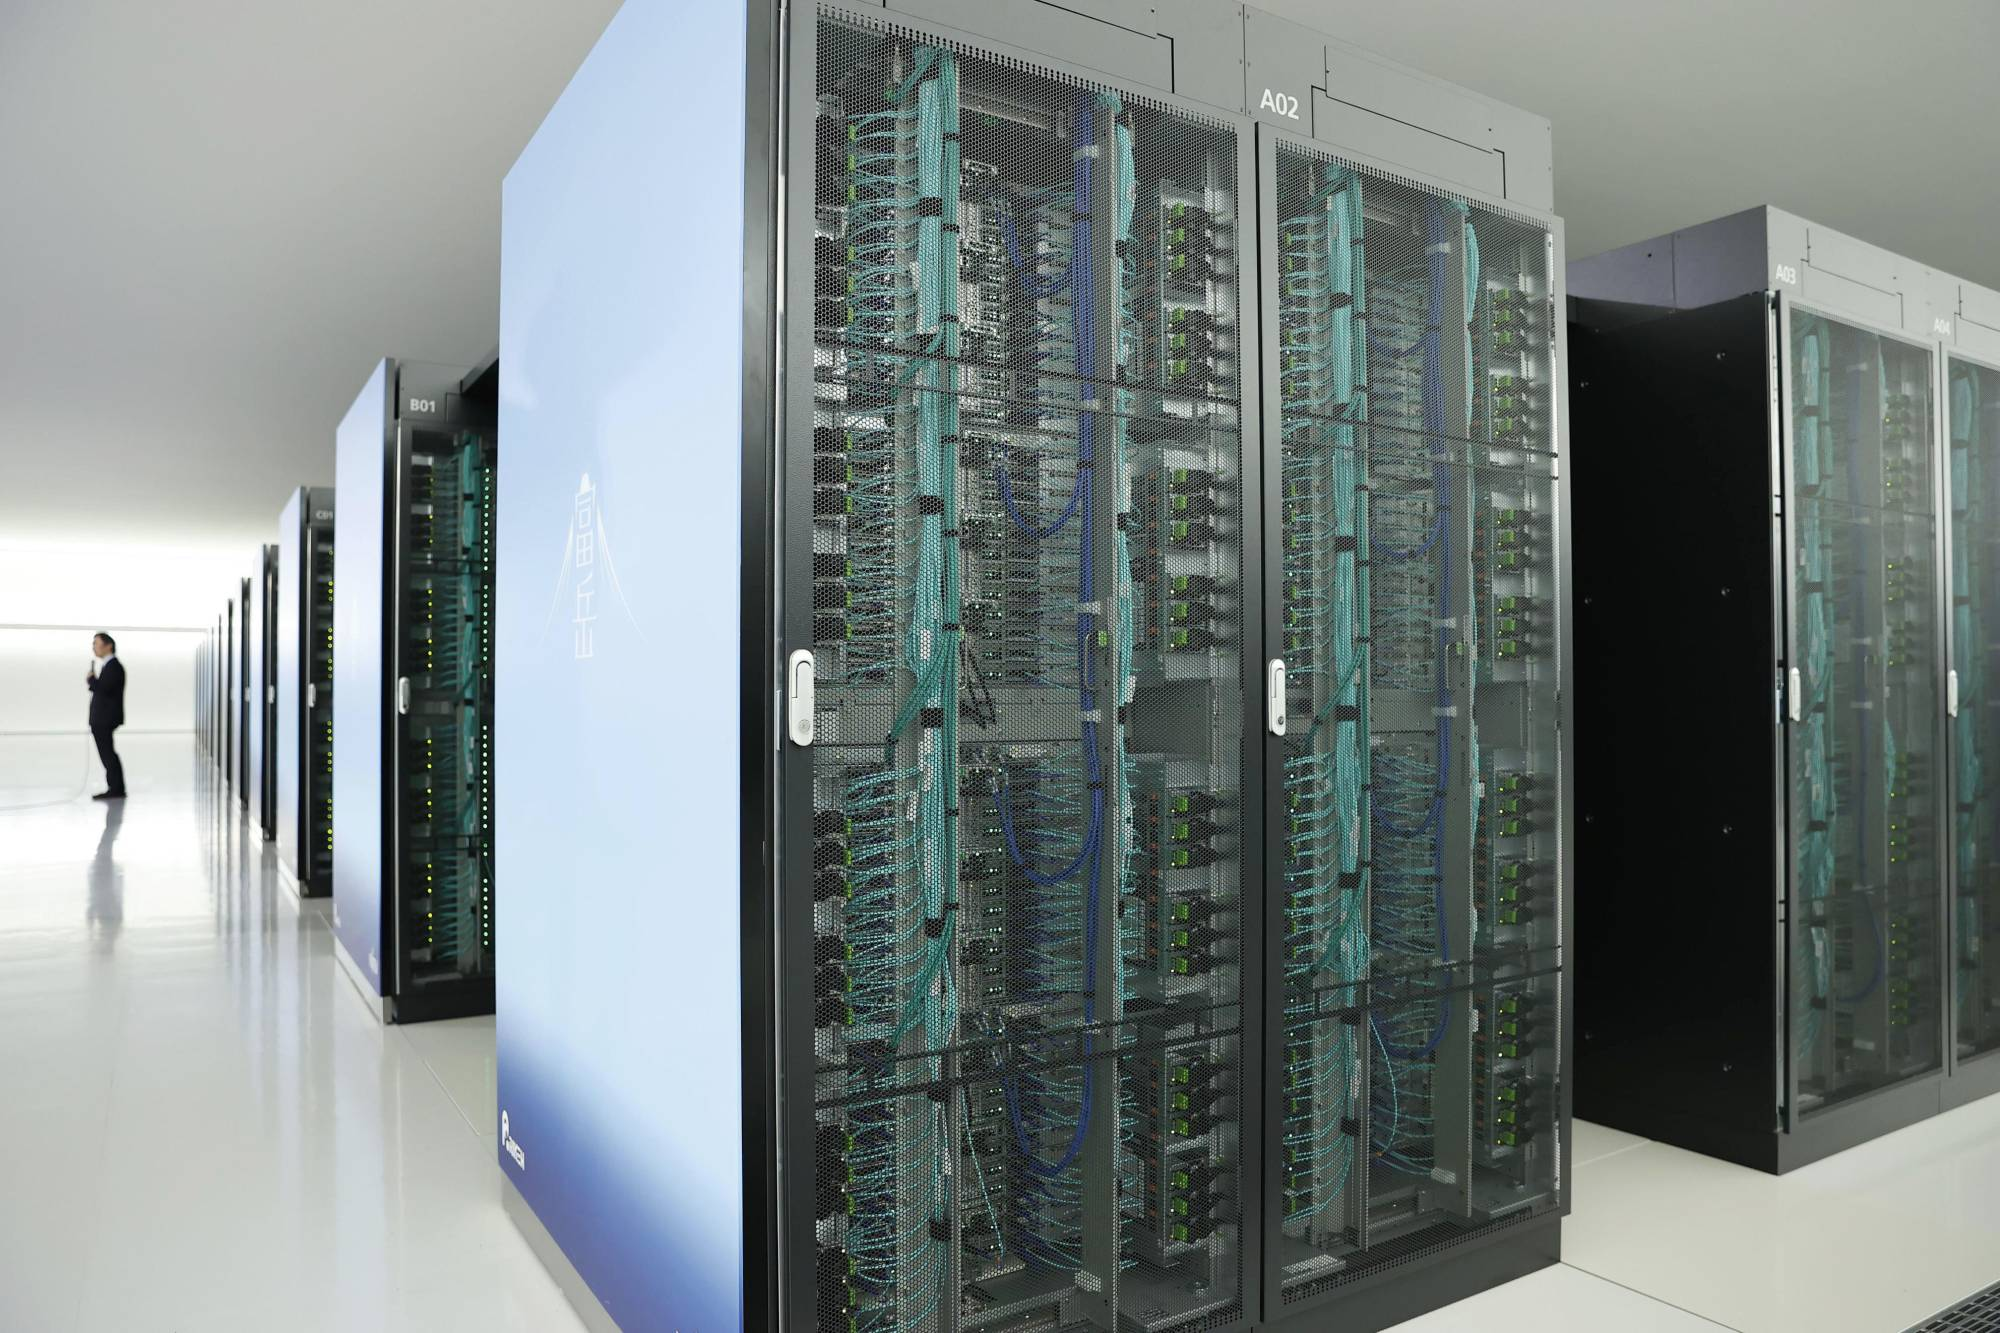 Japan's Fugaku supercomputer has retained its position as the world's fastest. | KYODO